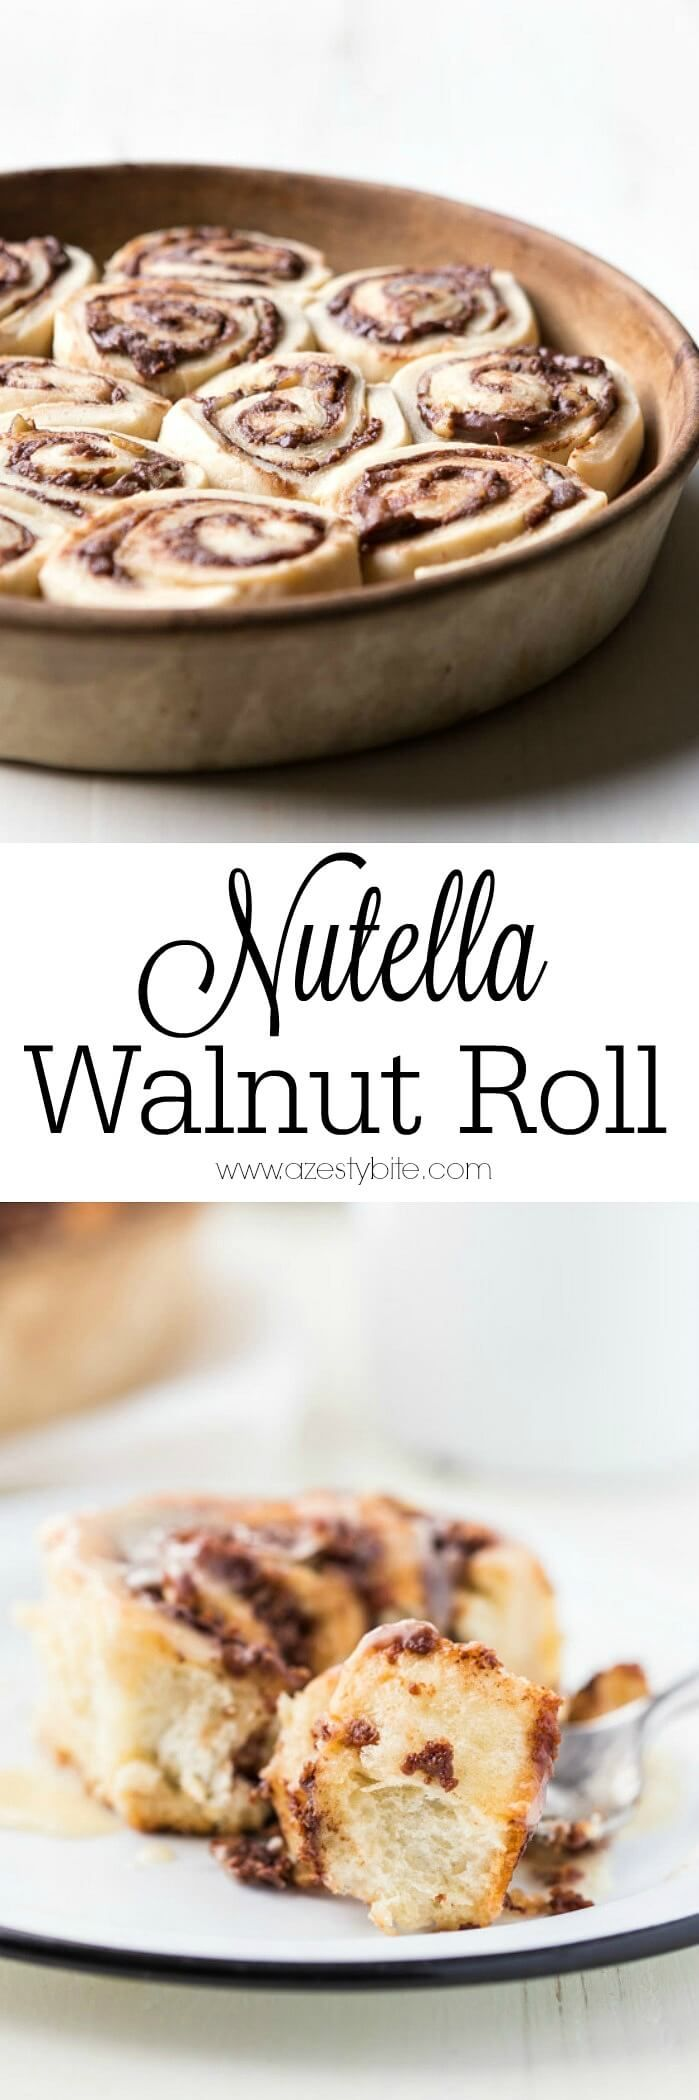 Nutella Walnut Rolls